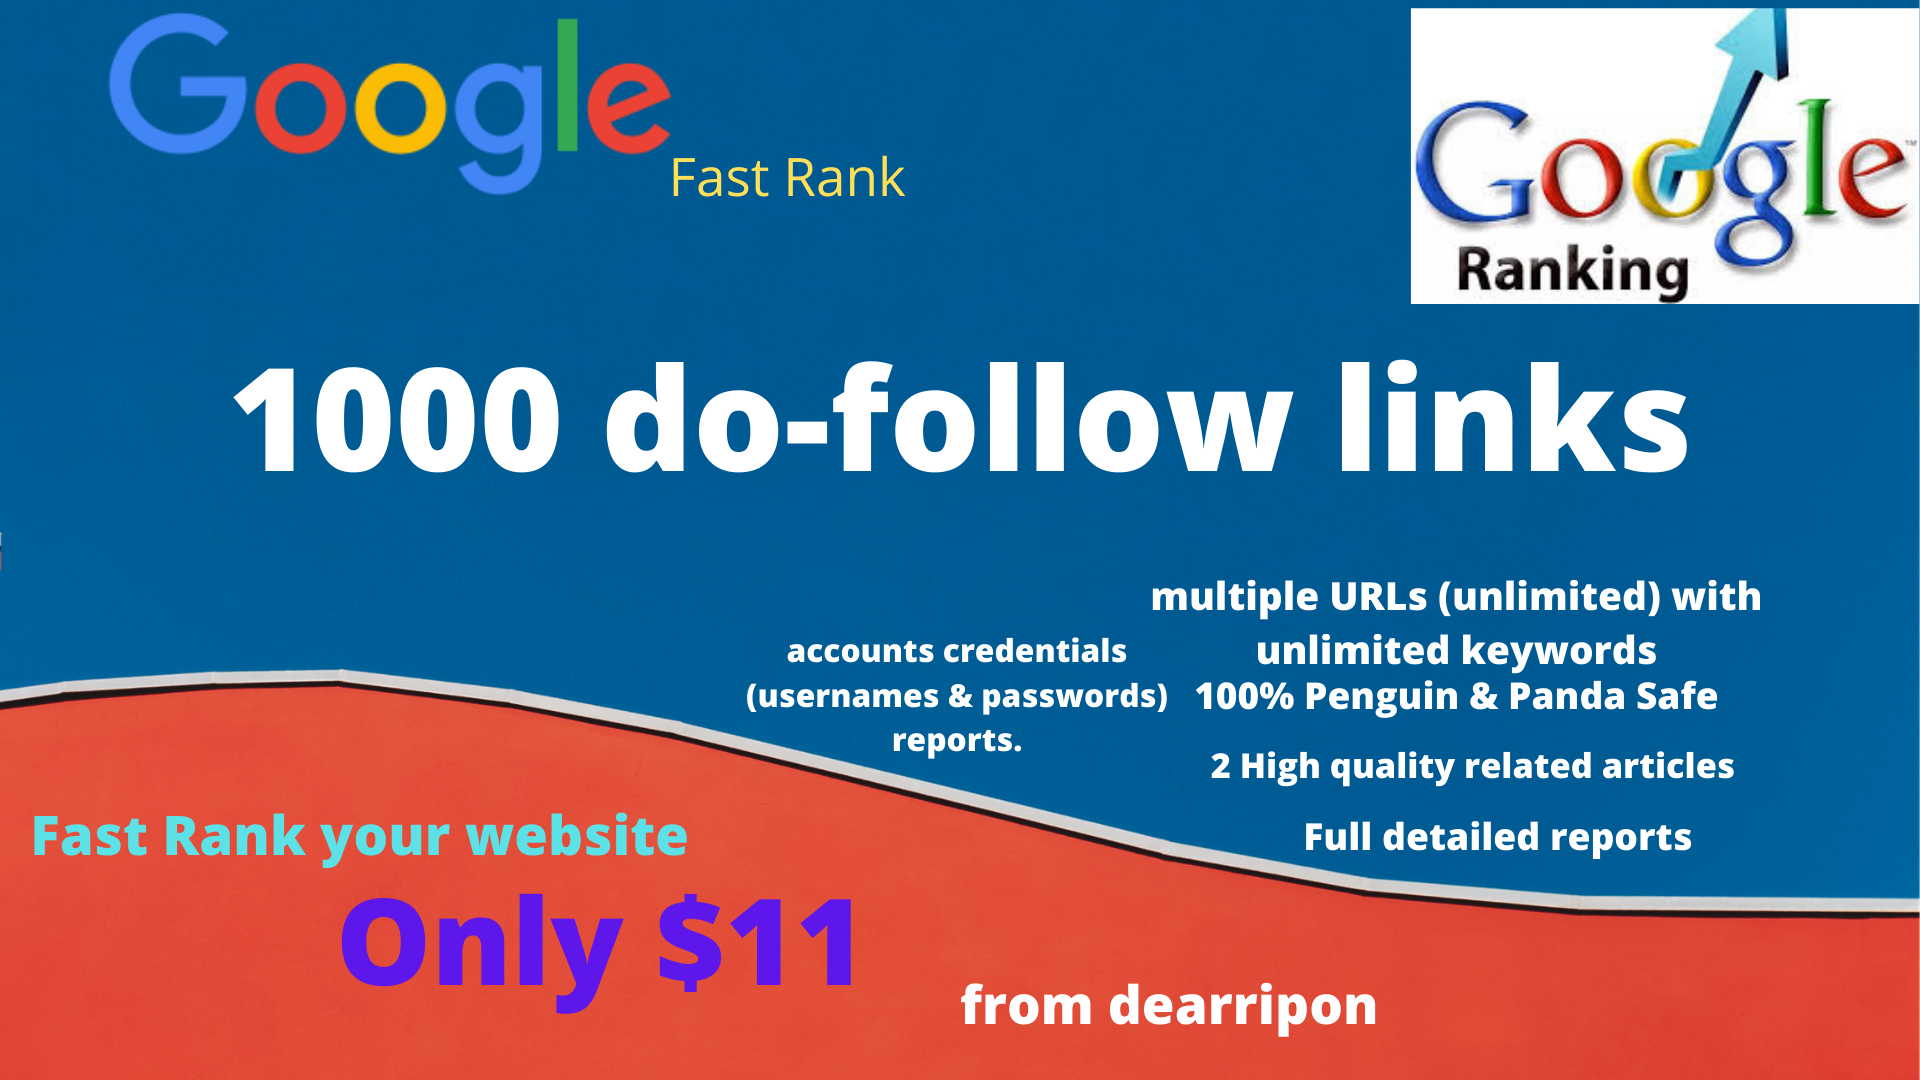 Google Fast Rank your site 1000 do-follow backlinks